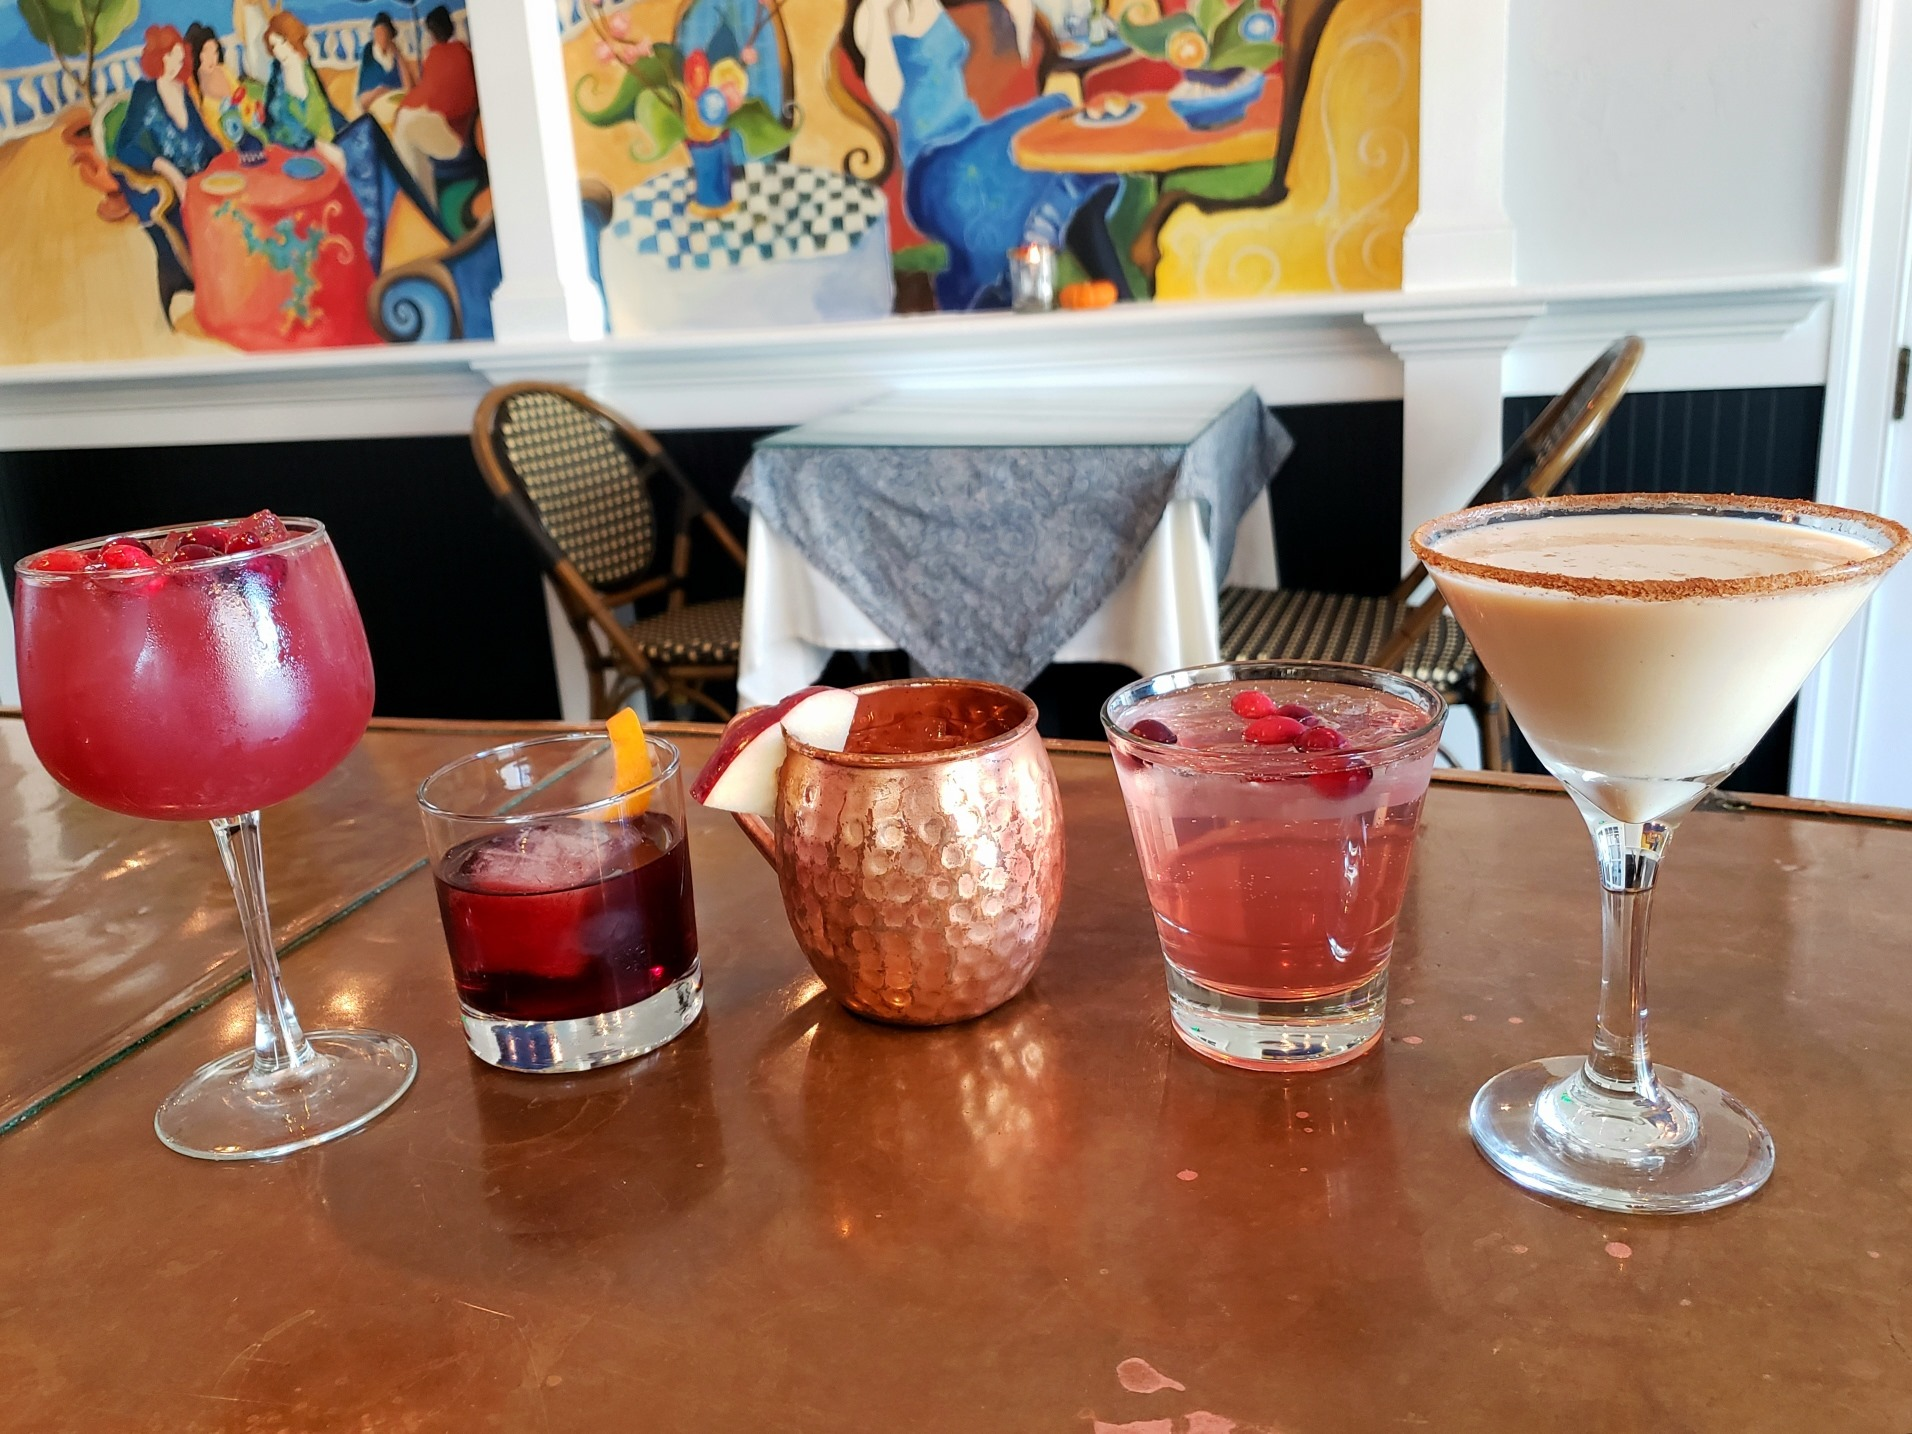 cocktails lined up on a table